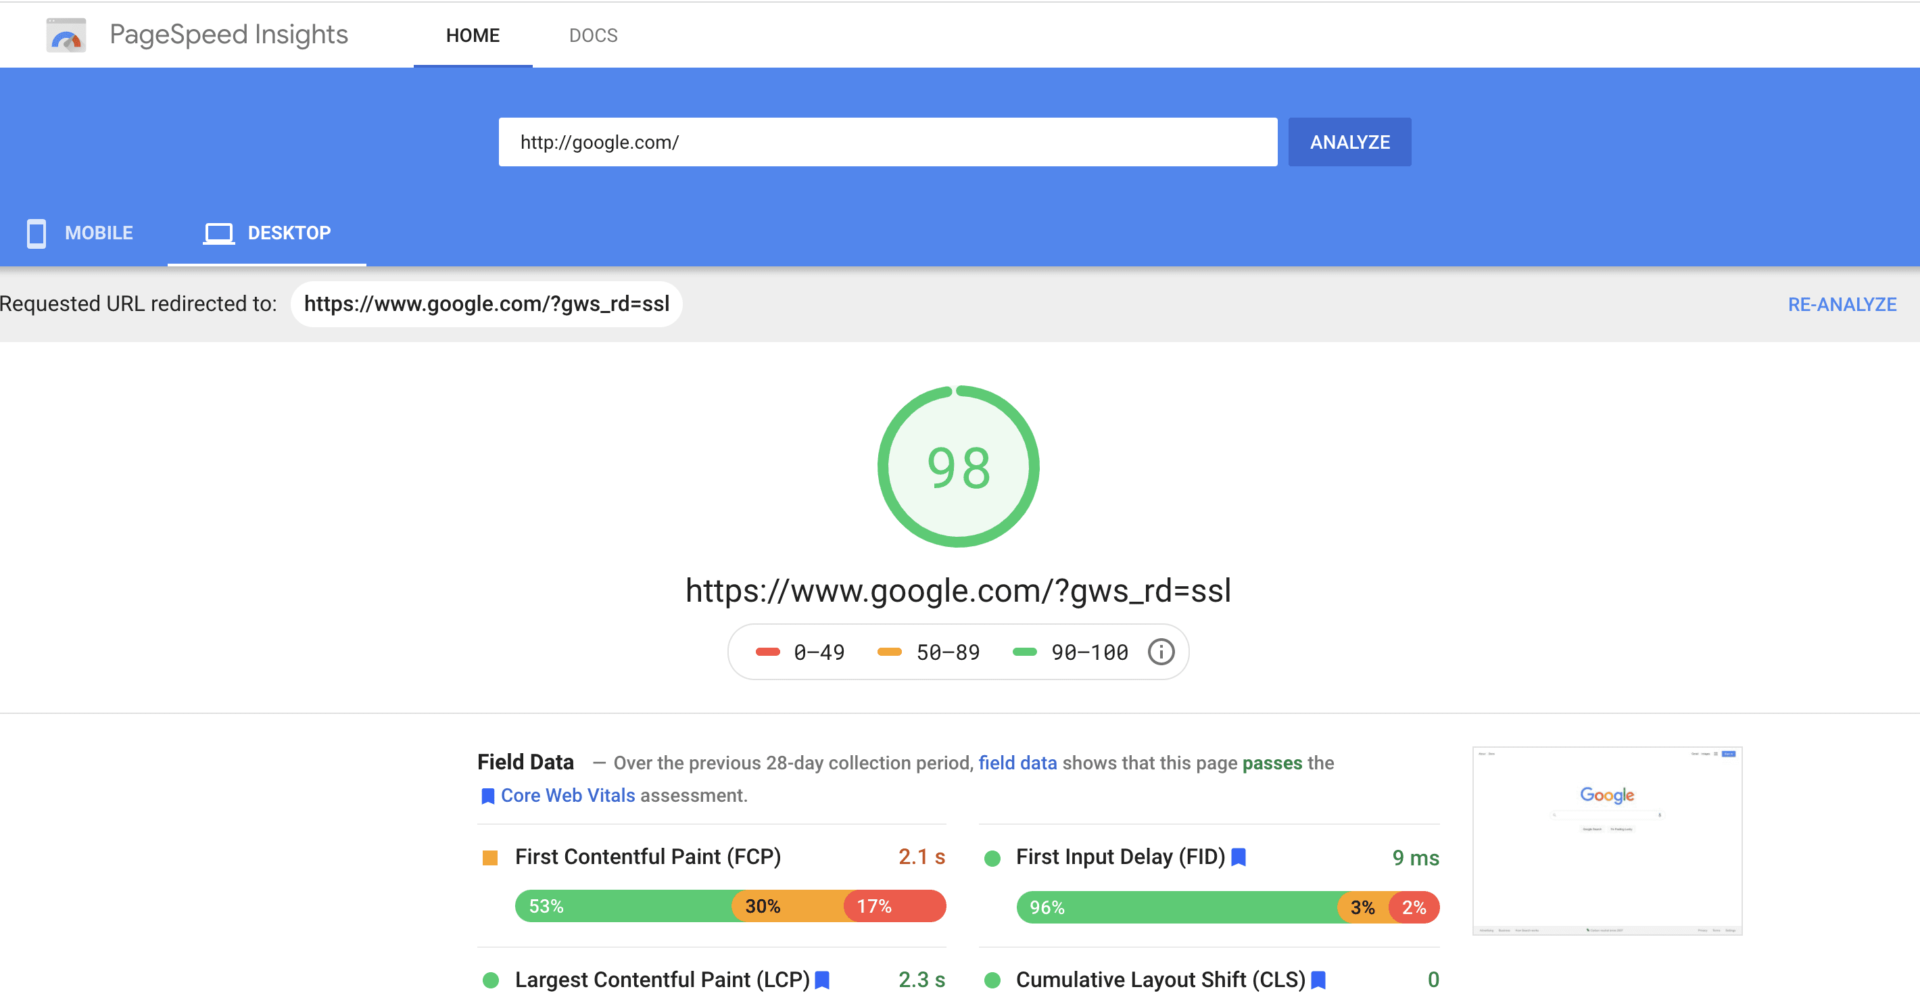 Google.com page speed